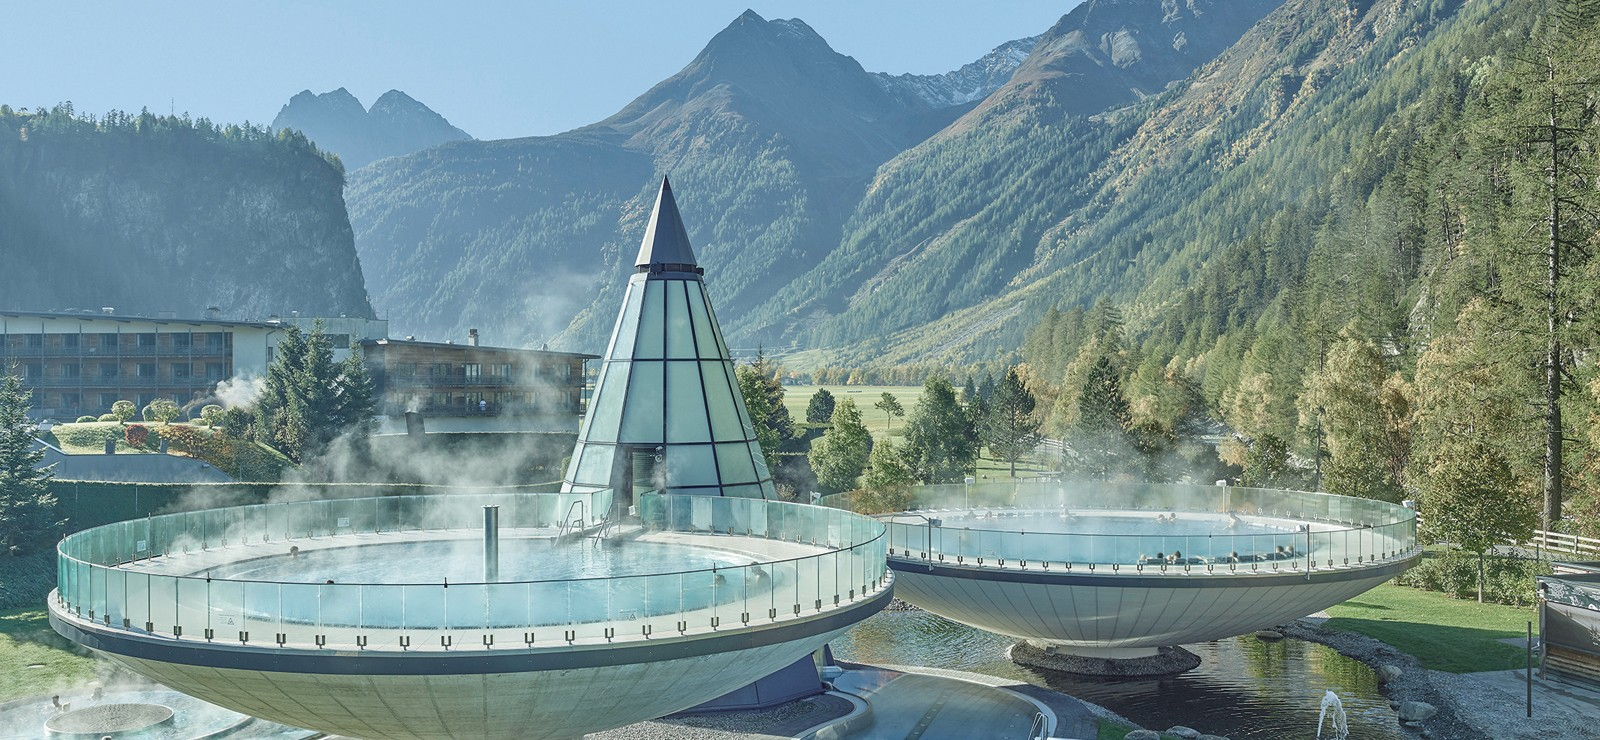 Die Besten Wellnesshotels In Der Kategorie Wellness Spa